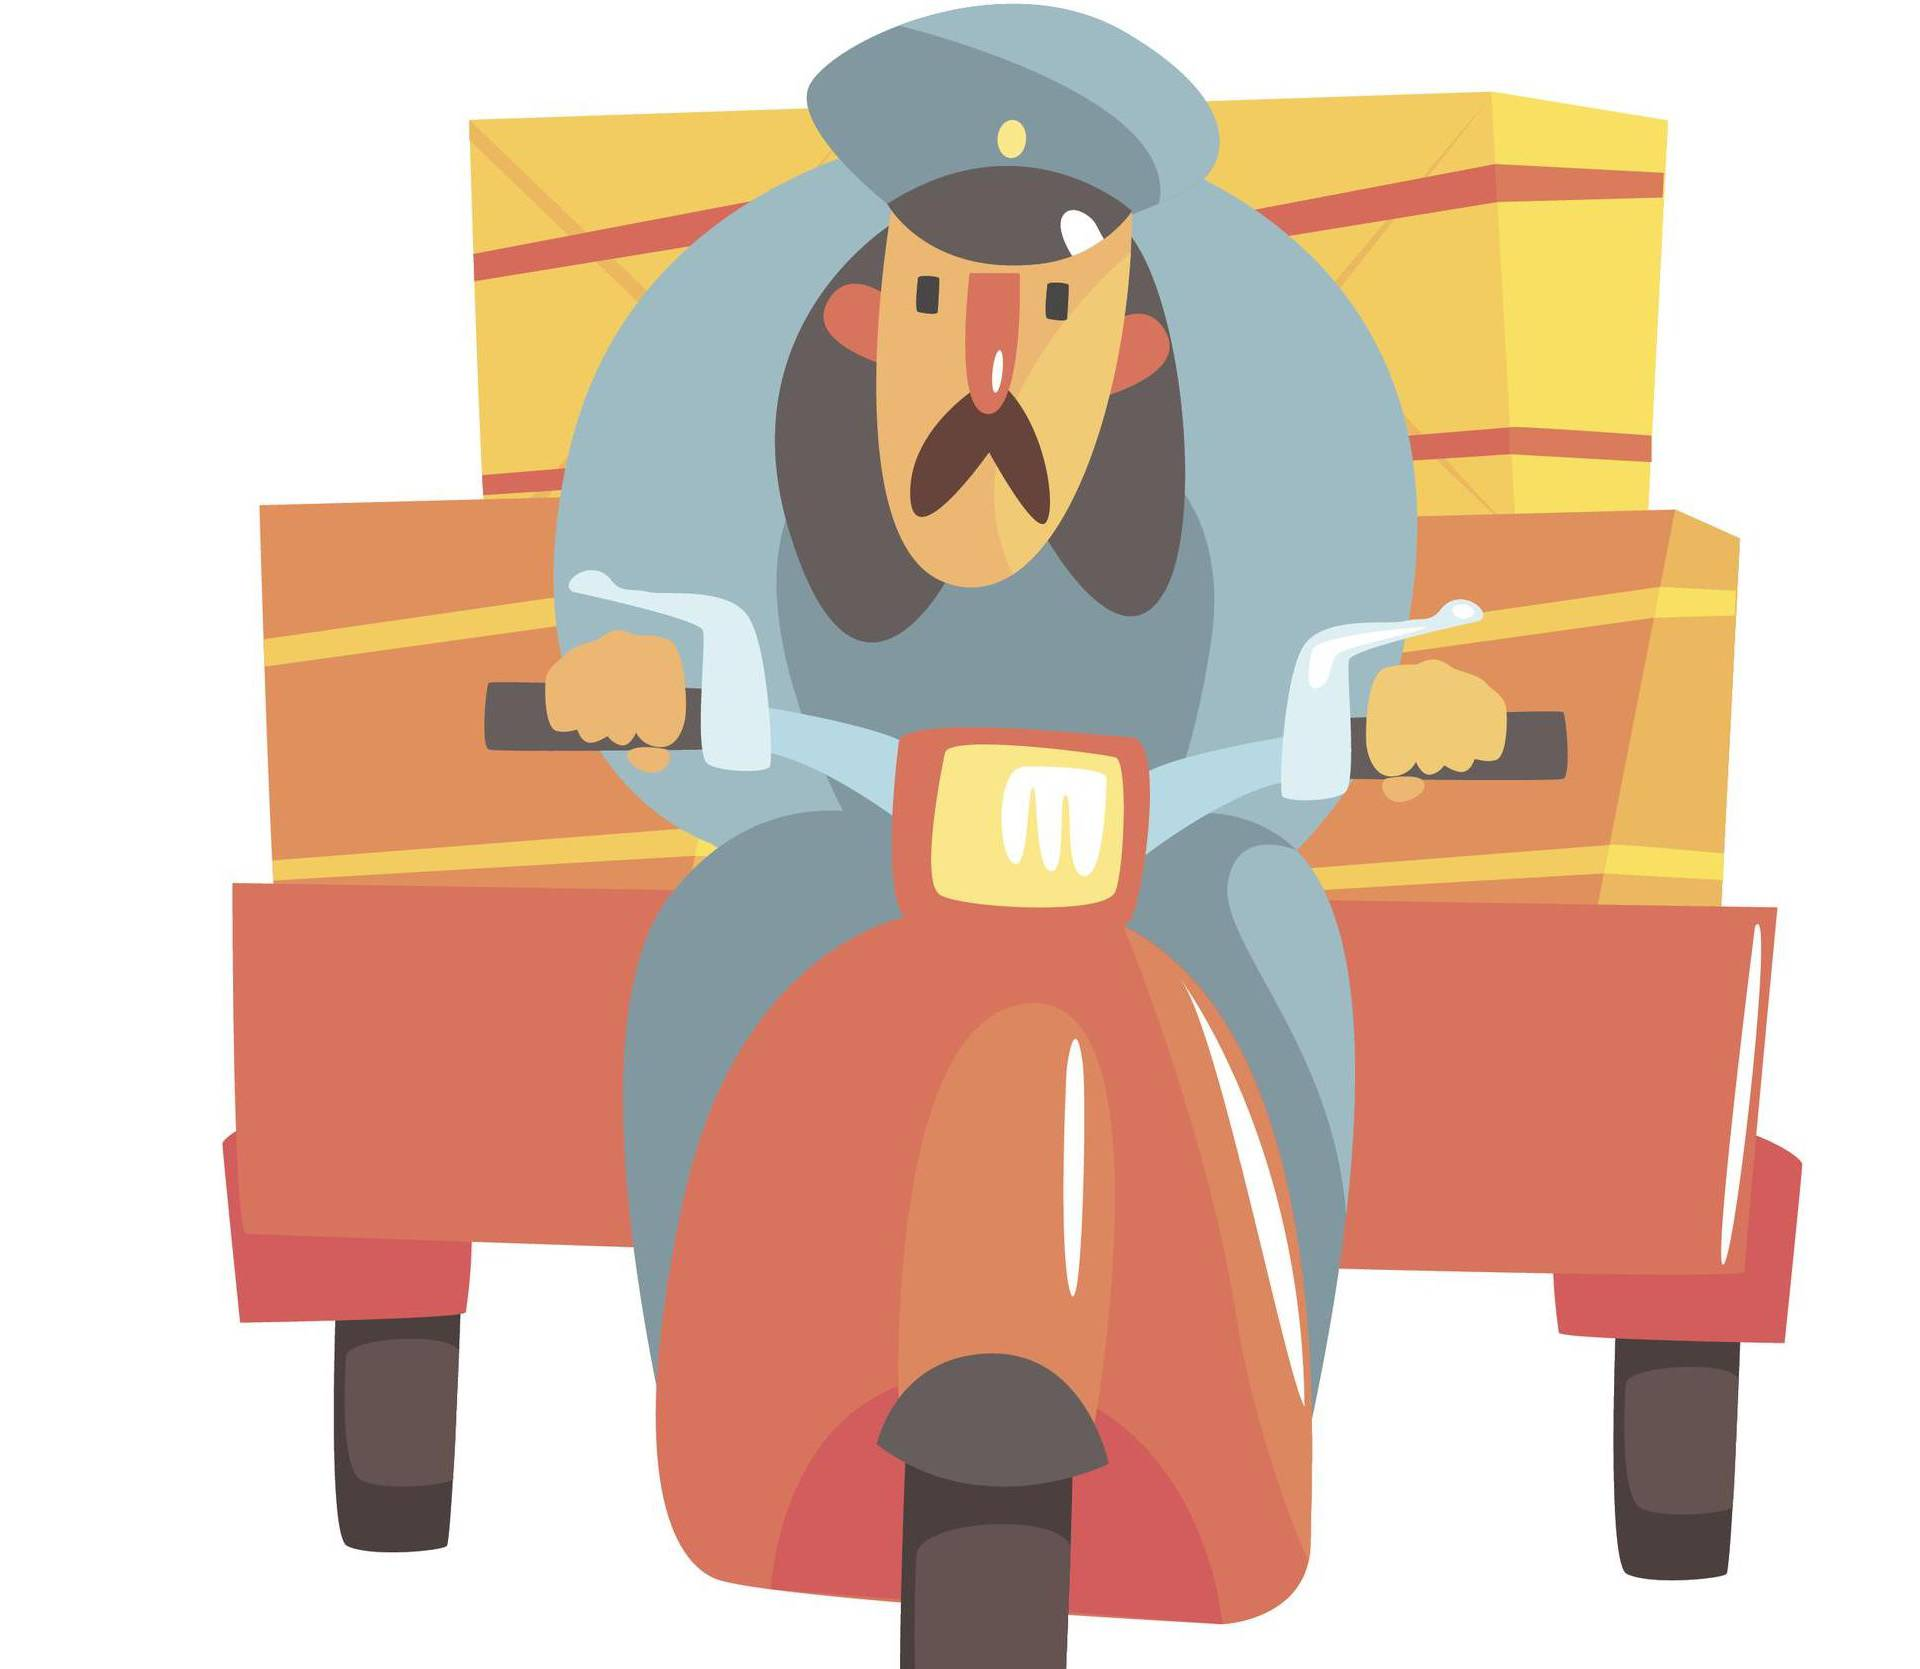 Postman Riding Red Motorbike With Trailer. Graphic